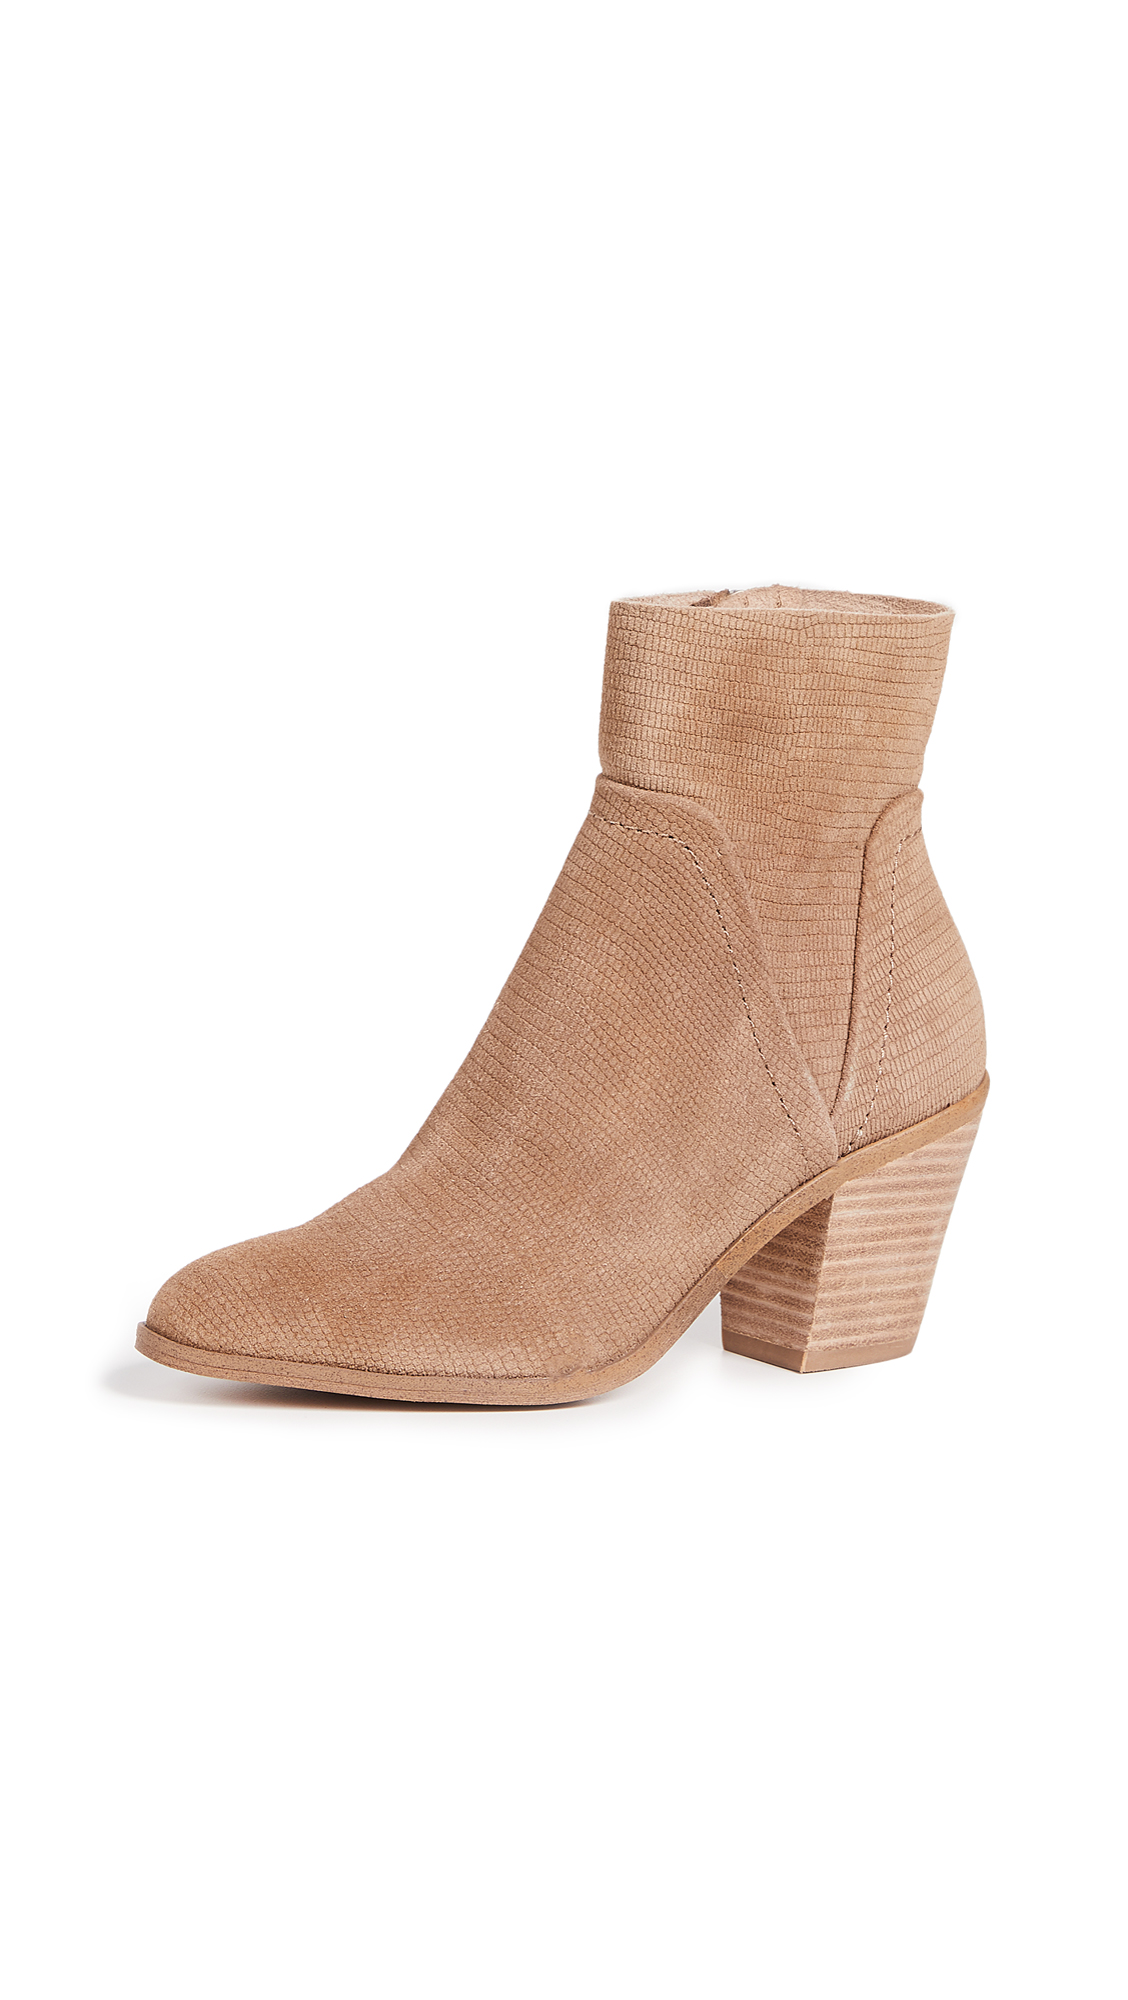 Splendid Cherie Block Heel Booties - Oat